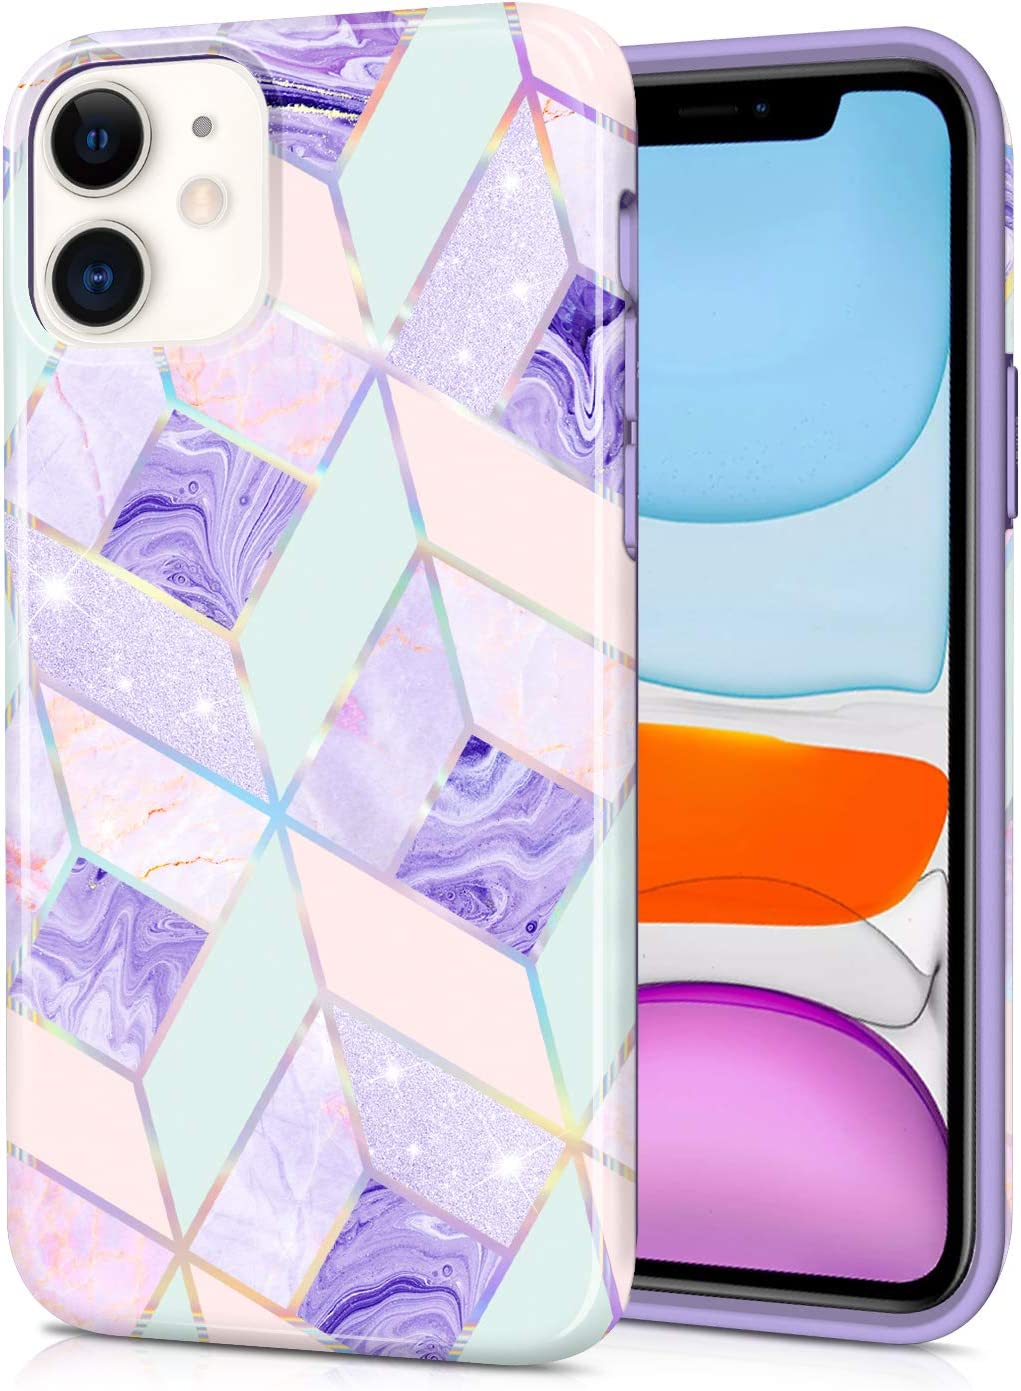 CAOUME iPhone 11 Case Purple Marble Design Sparkly Glitter Protective Stylish Geometric Slim Thin Cases for Apple Phone, Soft TPU Silicone Bumper Defender Camera Screen